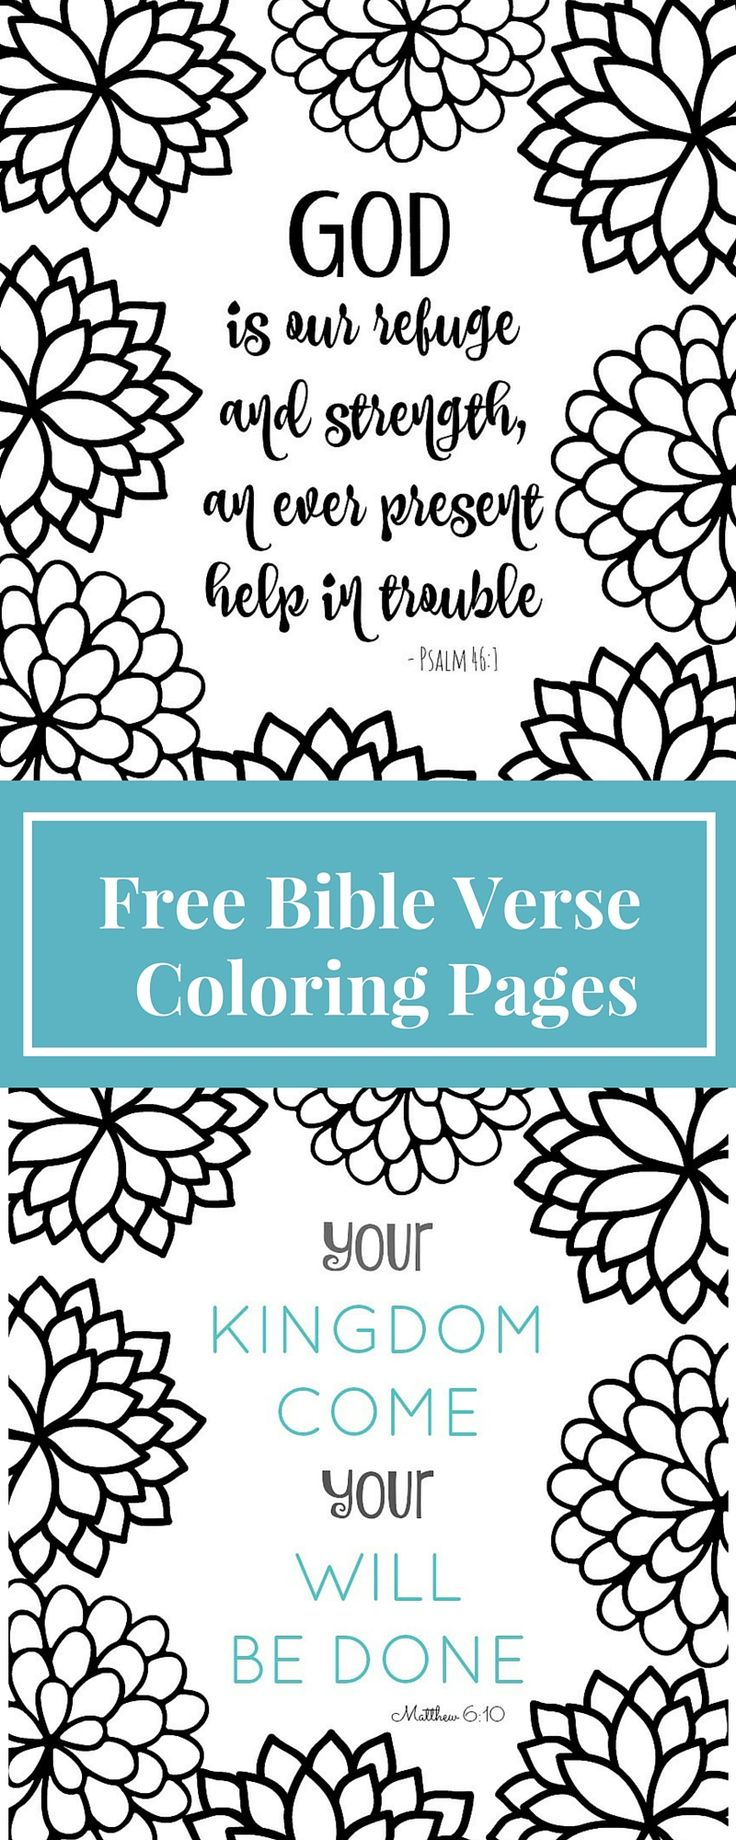 Free printable coloring pages for kids bible - Coloring Pages Are For Grown Ups Now These Bible Verse Coloring Page Printables Are Fun